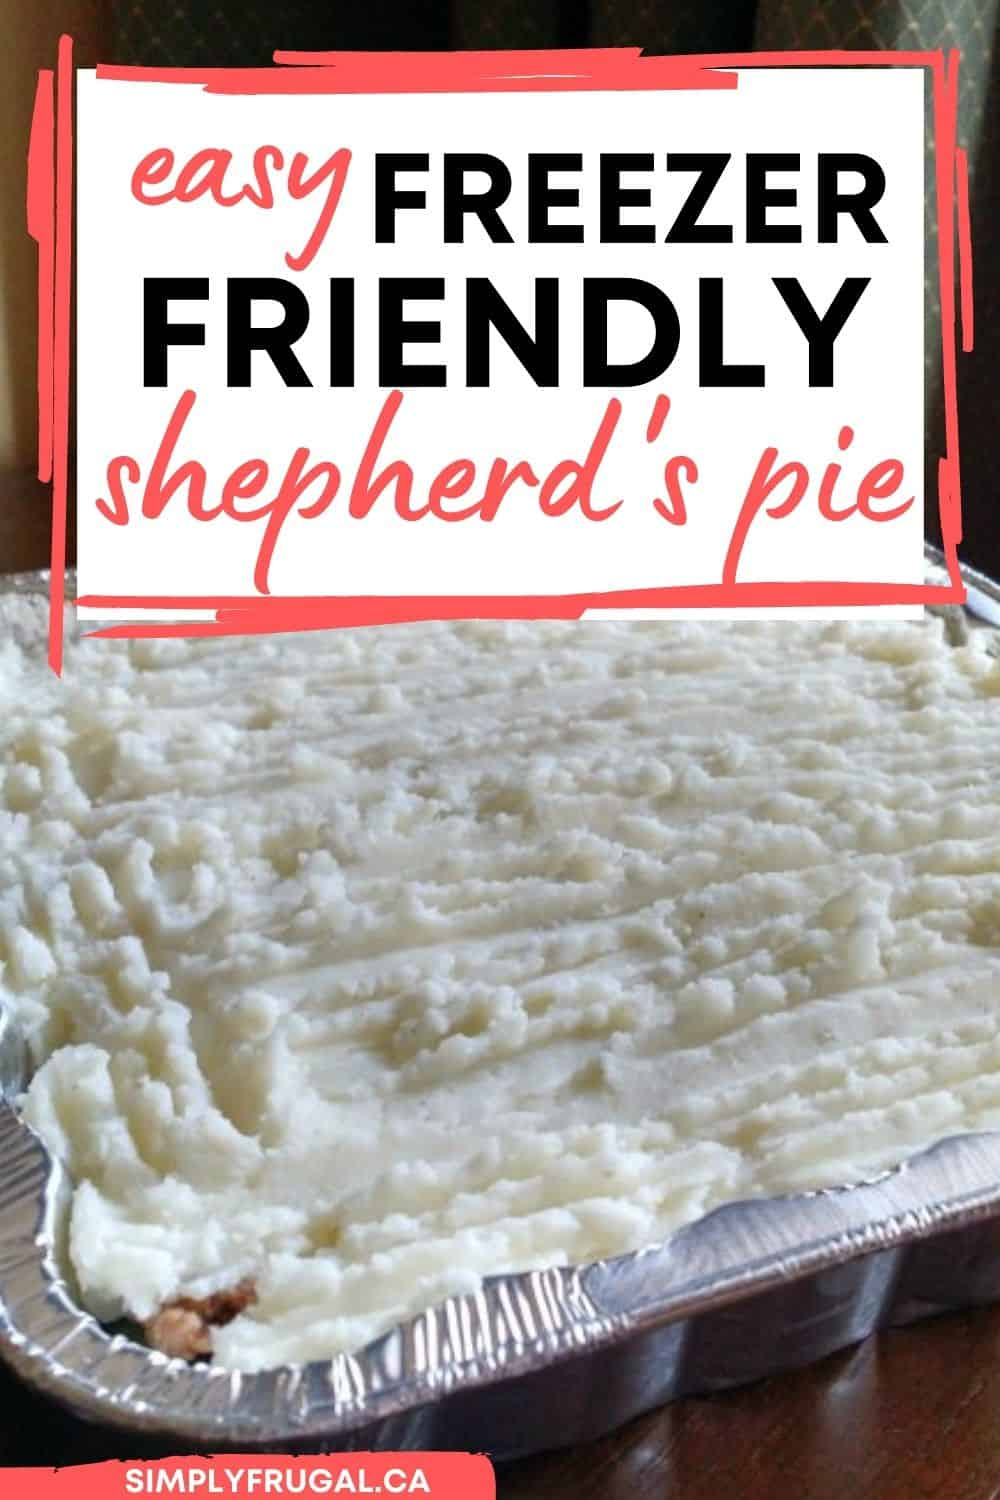 Easy freezer friendly Shepherd's pie recipeThis recipe for the ultimate comfort food, Easy Freezer-Friendly Shepherd's Pie will soon be one of your family's favorite meals!